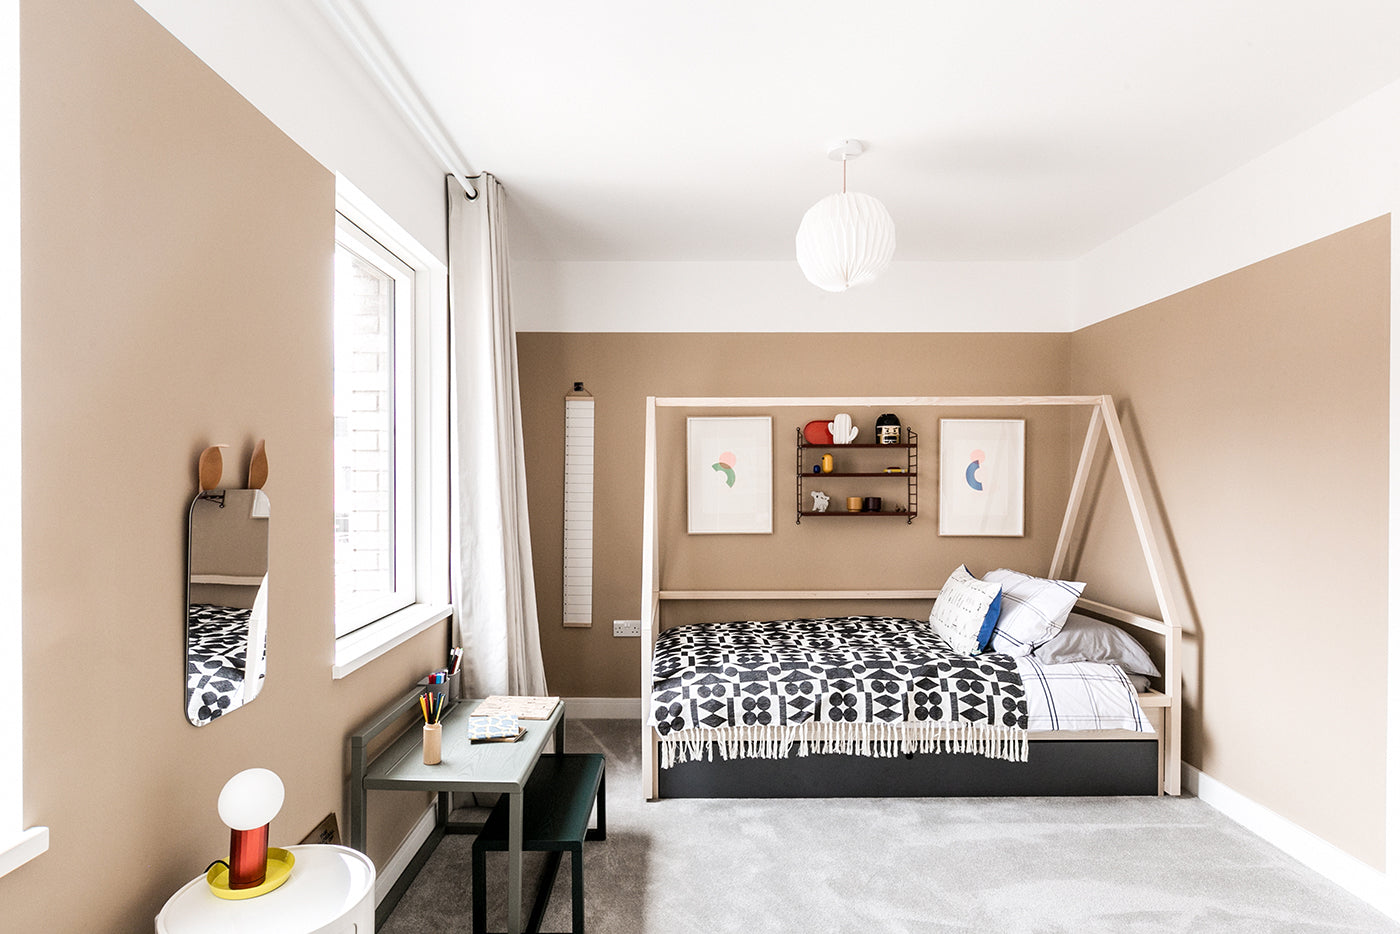 Bedroom design and bespoke prints